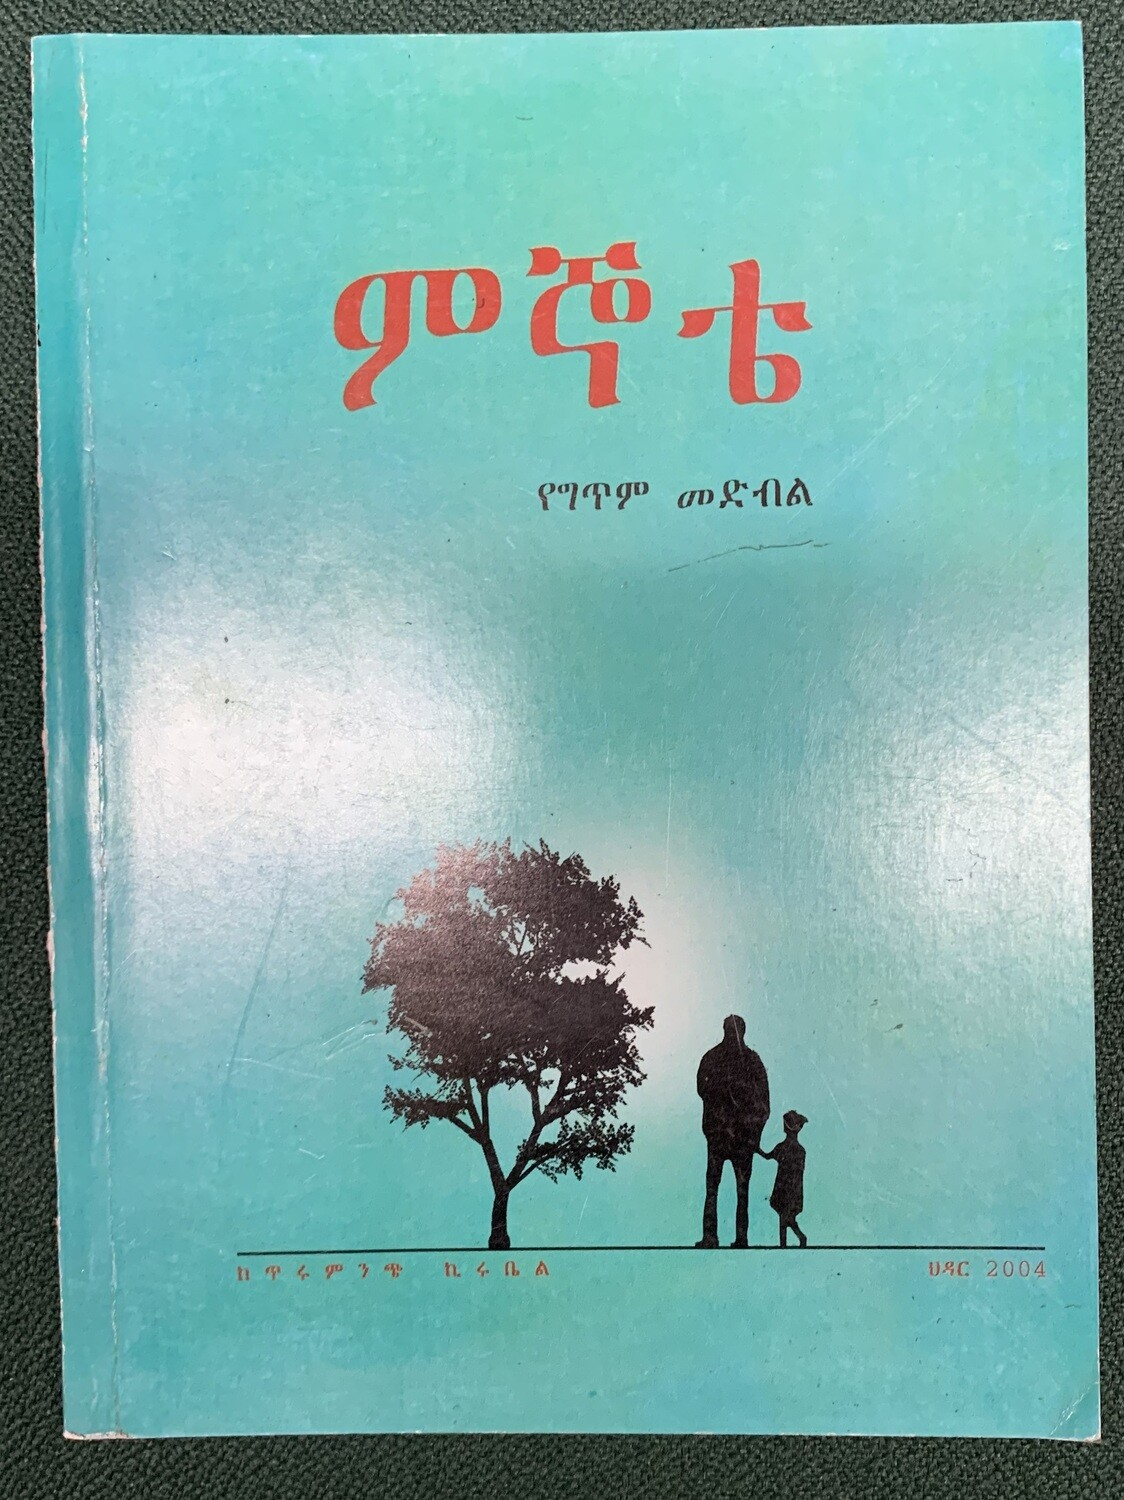 ምኞቴ የግጥም መድብል ከጥሩምንጭ ኪሩቤል Megnote By TiruMench Kirubel